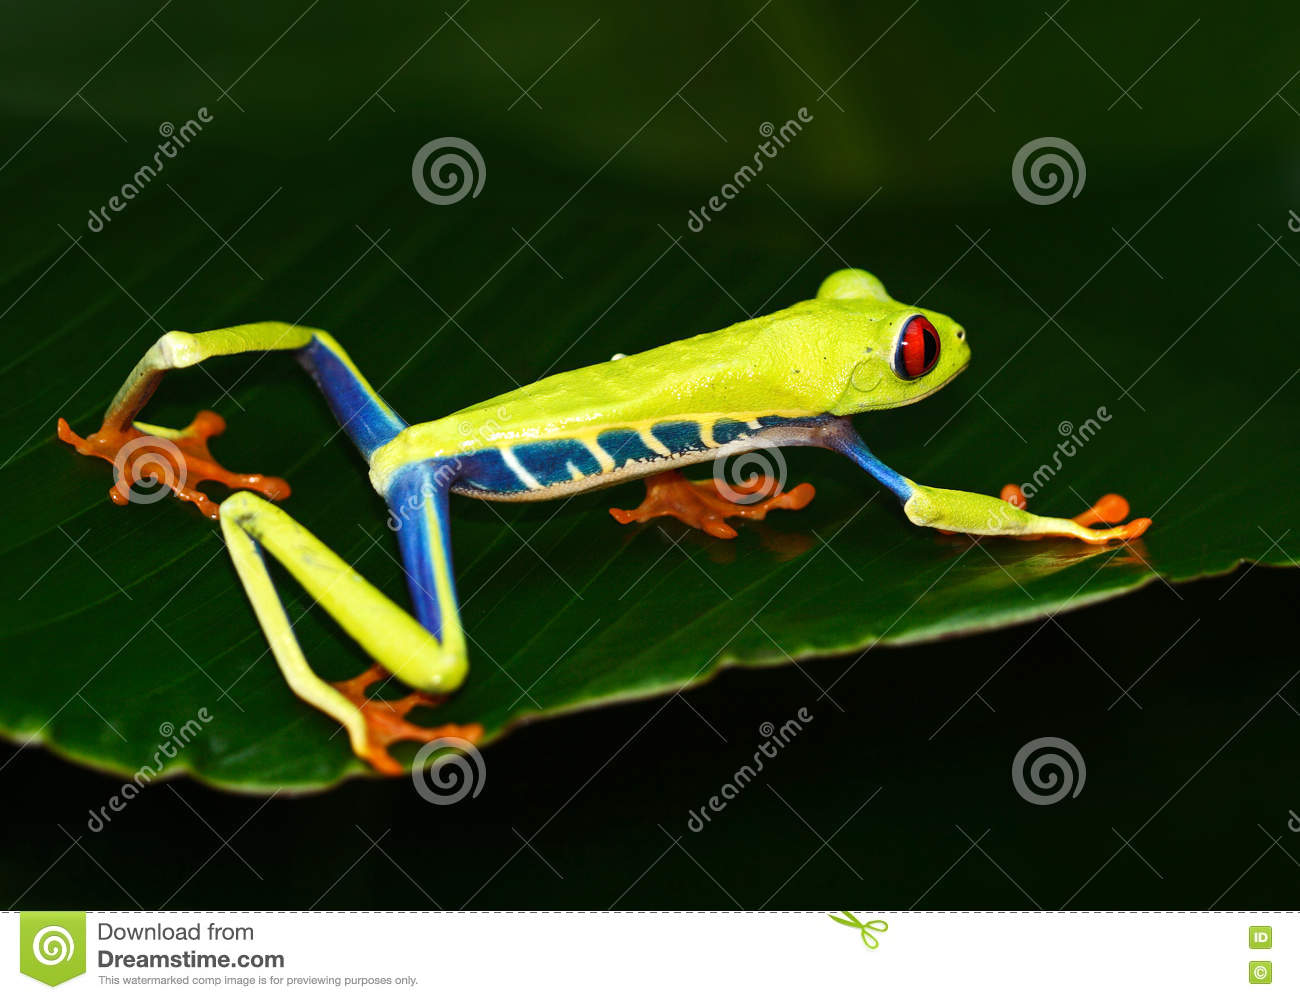 Red-eyed Tree Frog, Agalychnis callidryas, animal with big red eyes, in the nature habitat, Costa Rica. Beautiful exotic animal fr